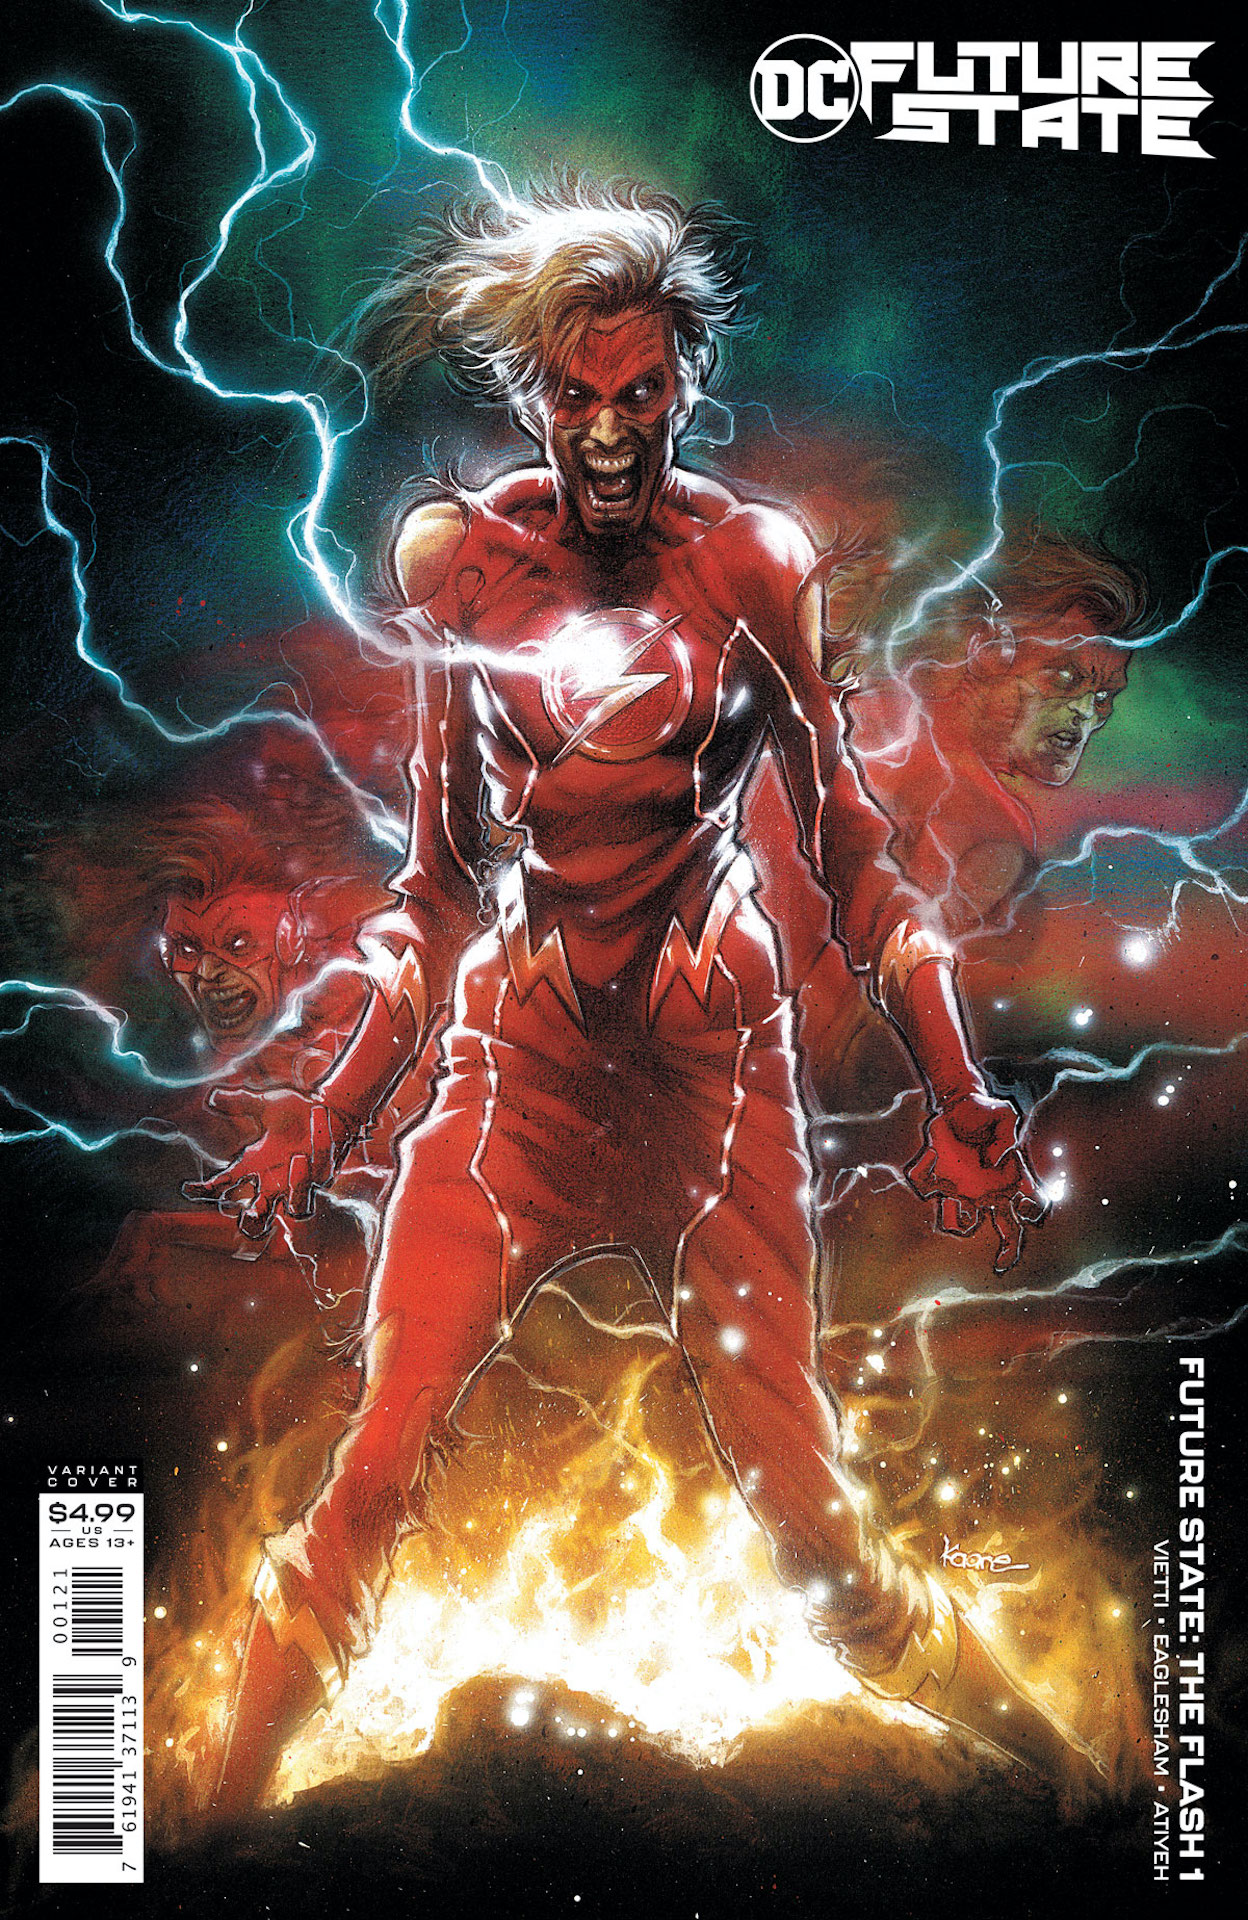 Future State: The Flash #1 preview